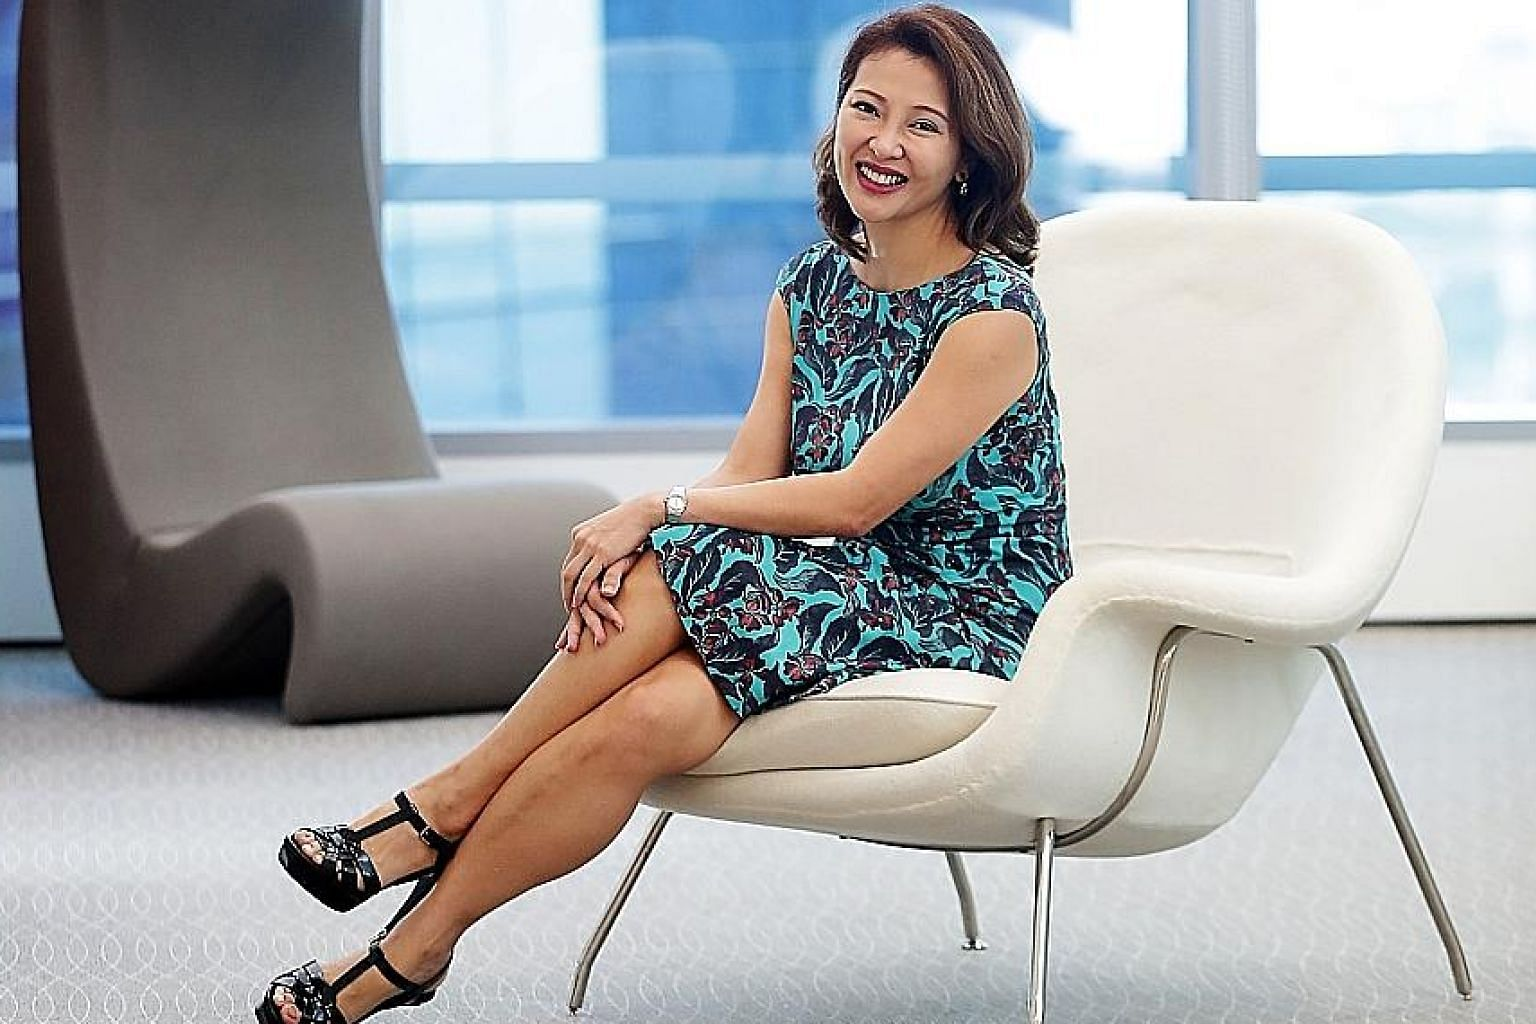 Most professionals in the Asia-Pacific still take a more passive approach to their skills development, says Ms Feon Ang, LinkedIn's vice-president of talent and learning solutions for Asia-Pacific.